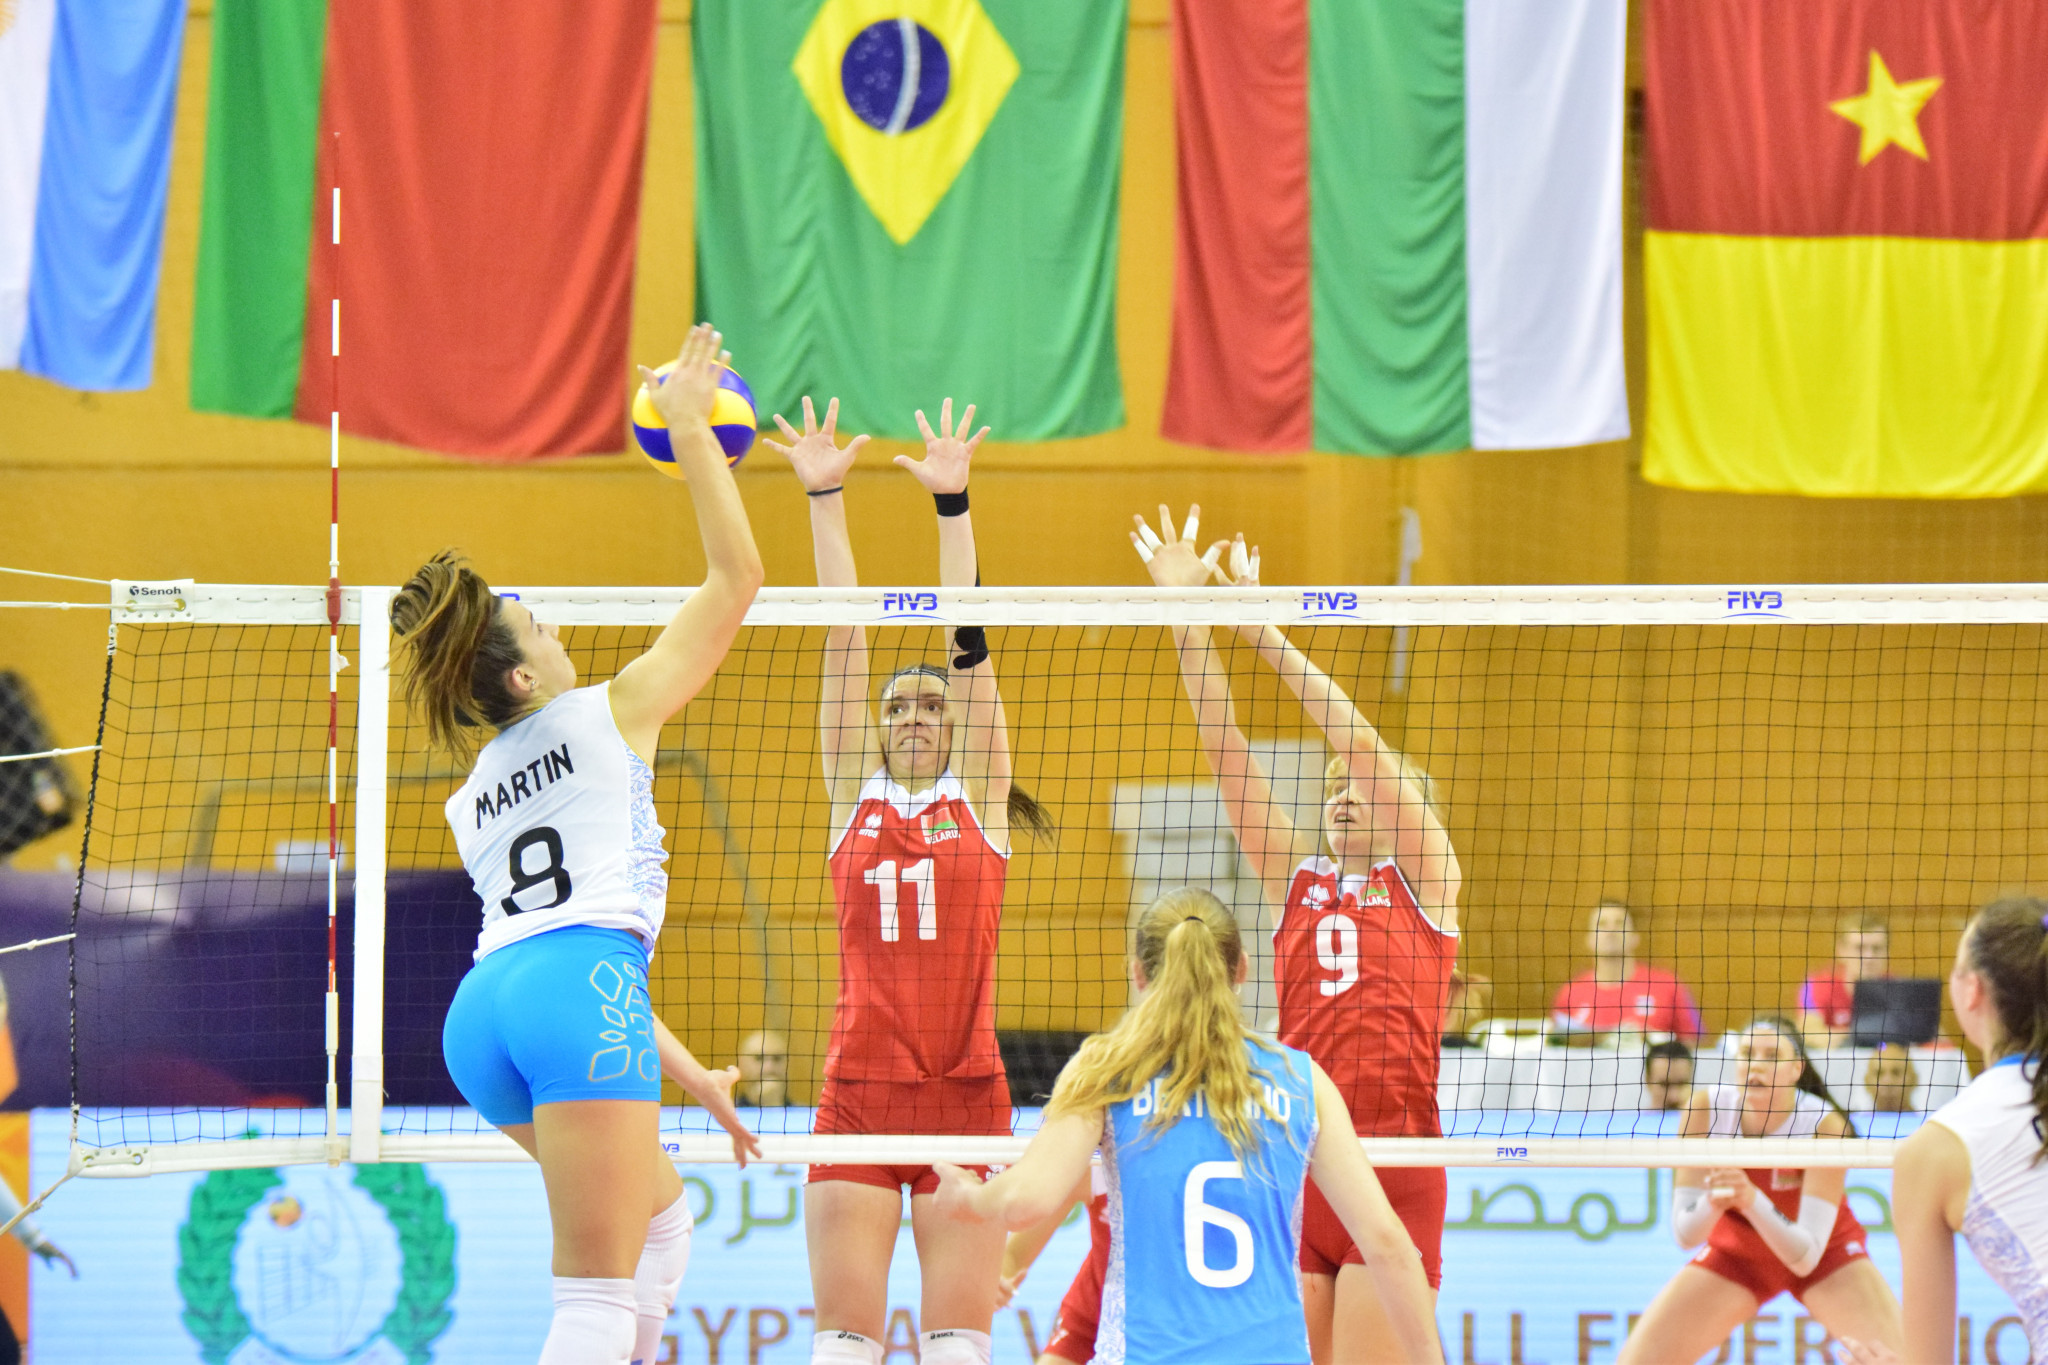 Two knock-out places remain unclaimed after latest pool matches at FIVB Girls' Under-18 World Championship